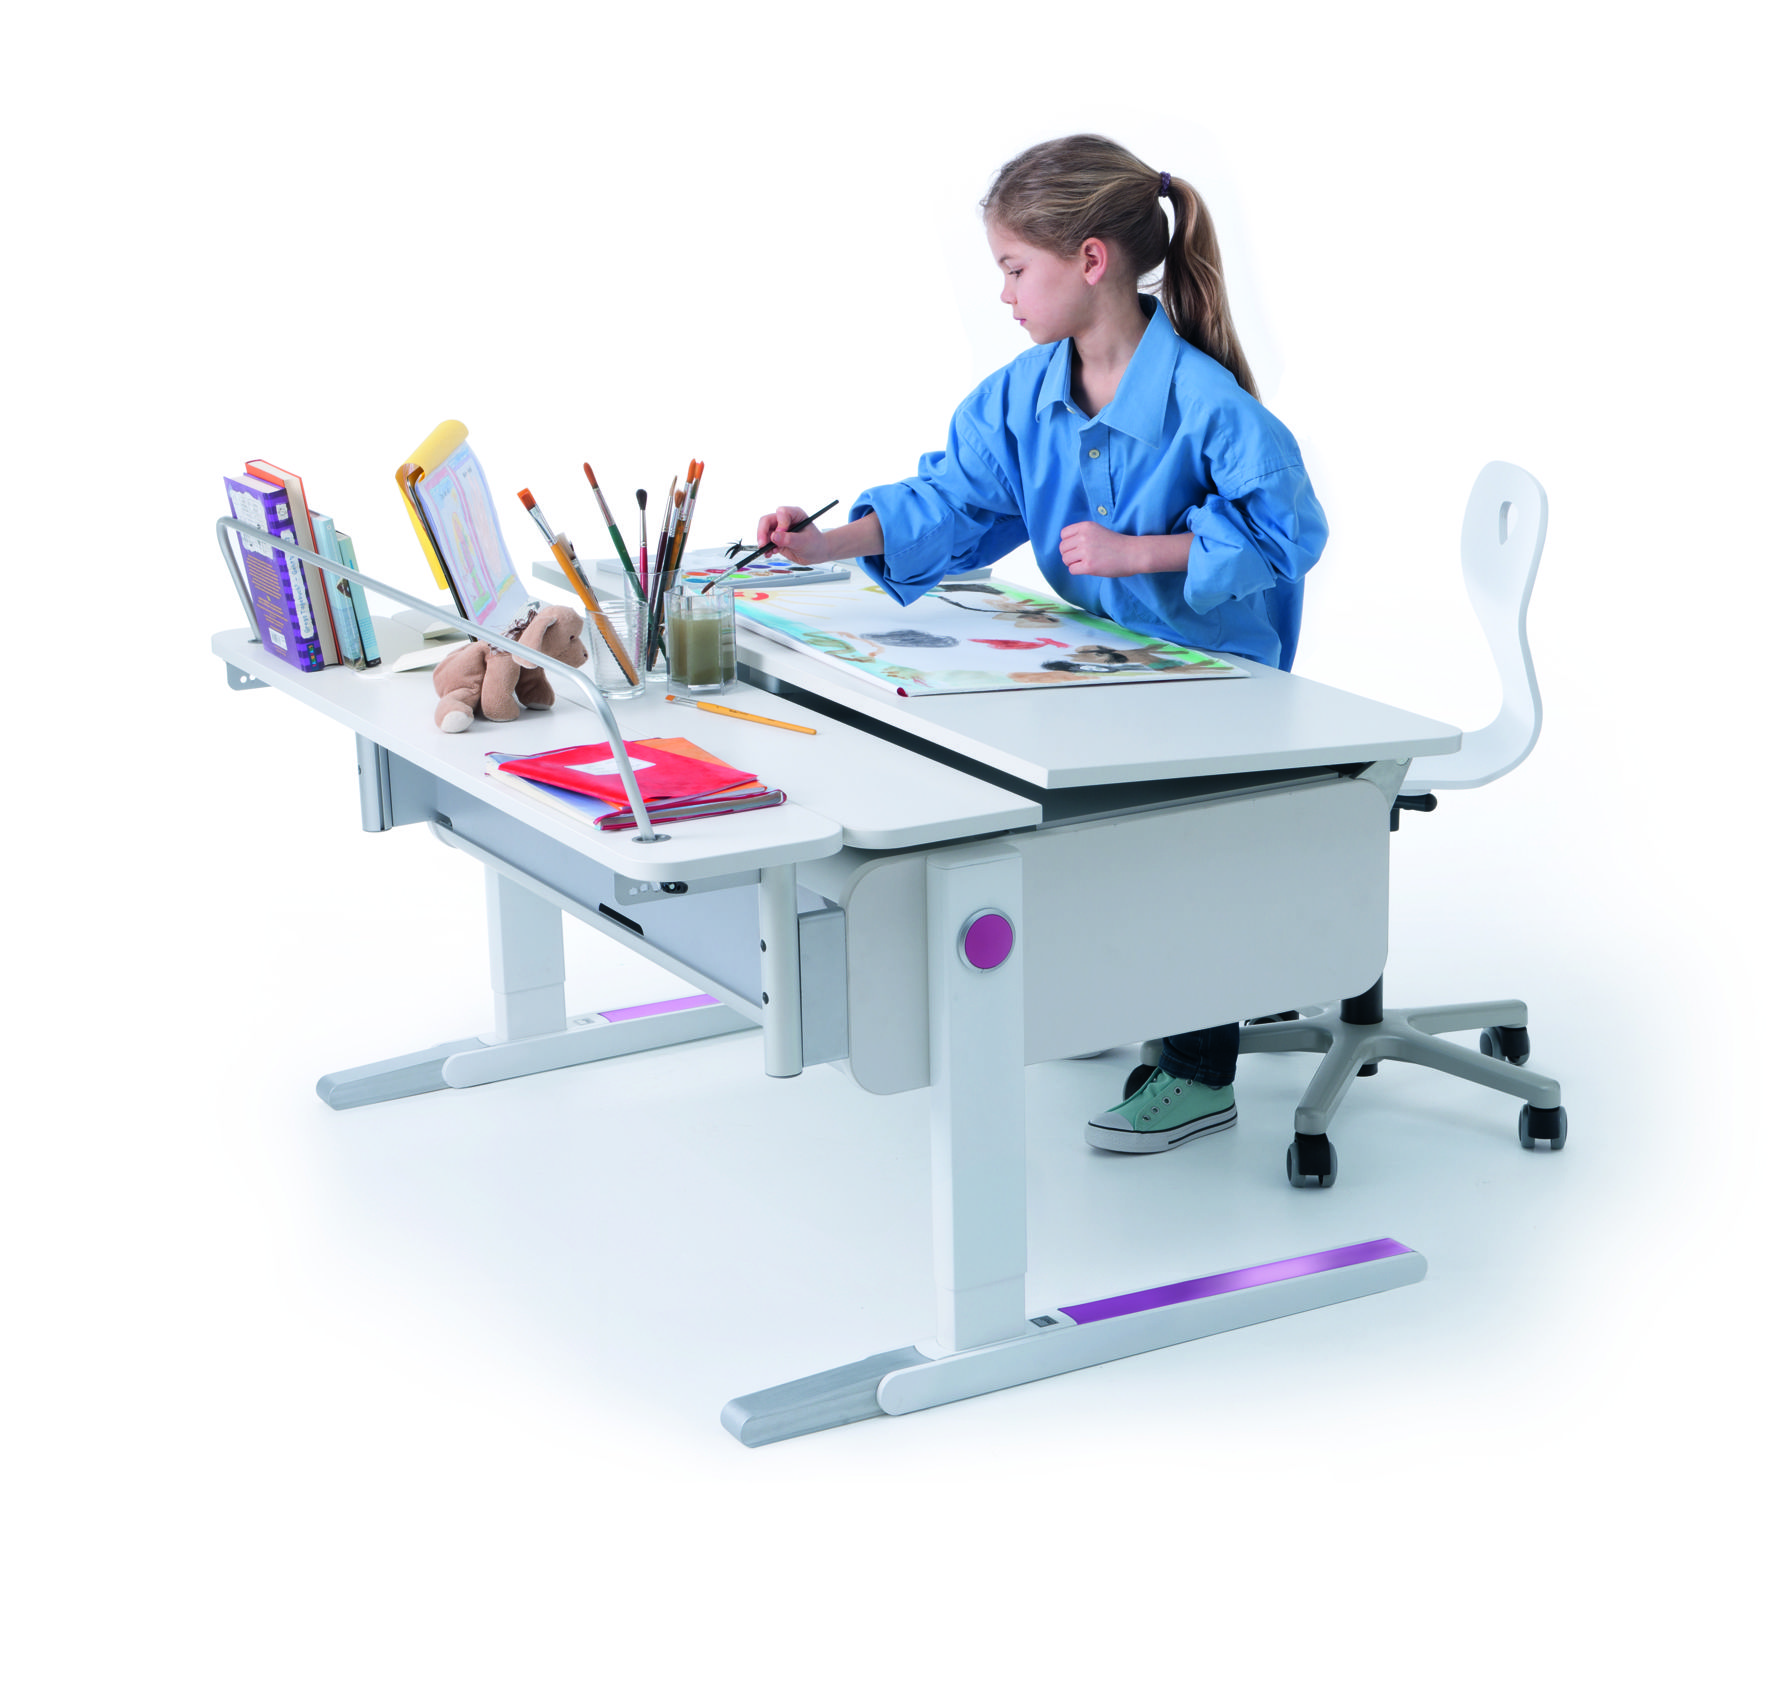 Kinderschreibtisch Moll Champion Desk By Moll With Multi Deck Depth Extension Perfect